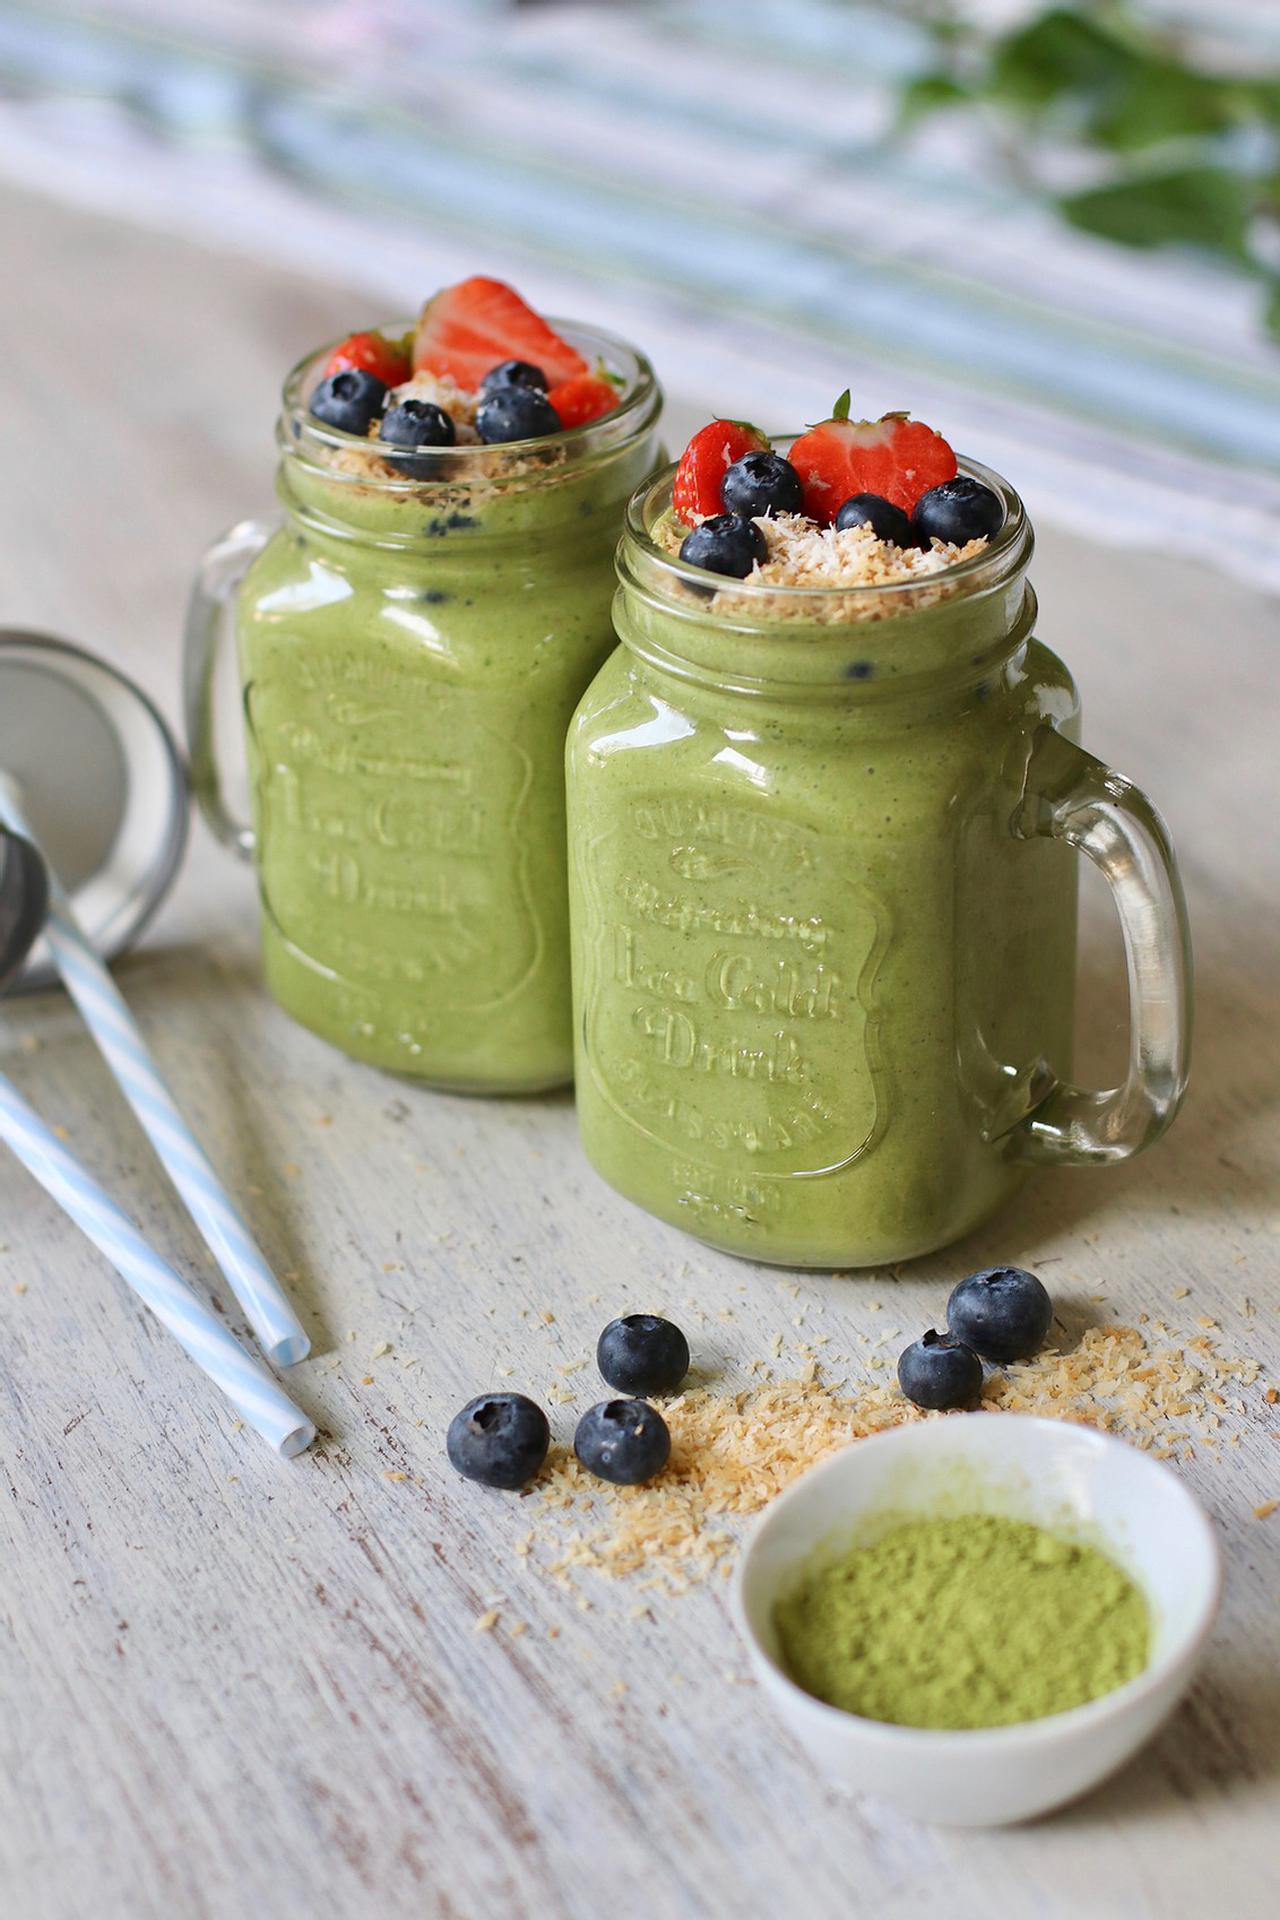 Main image of Tropical Matcha Green Smoothie